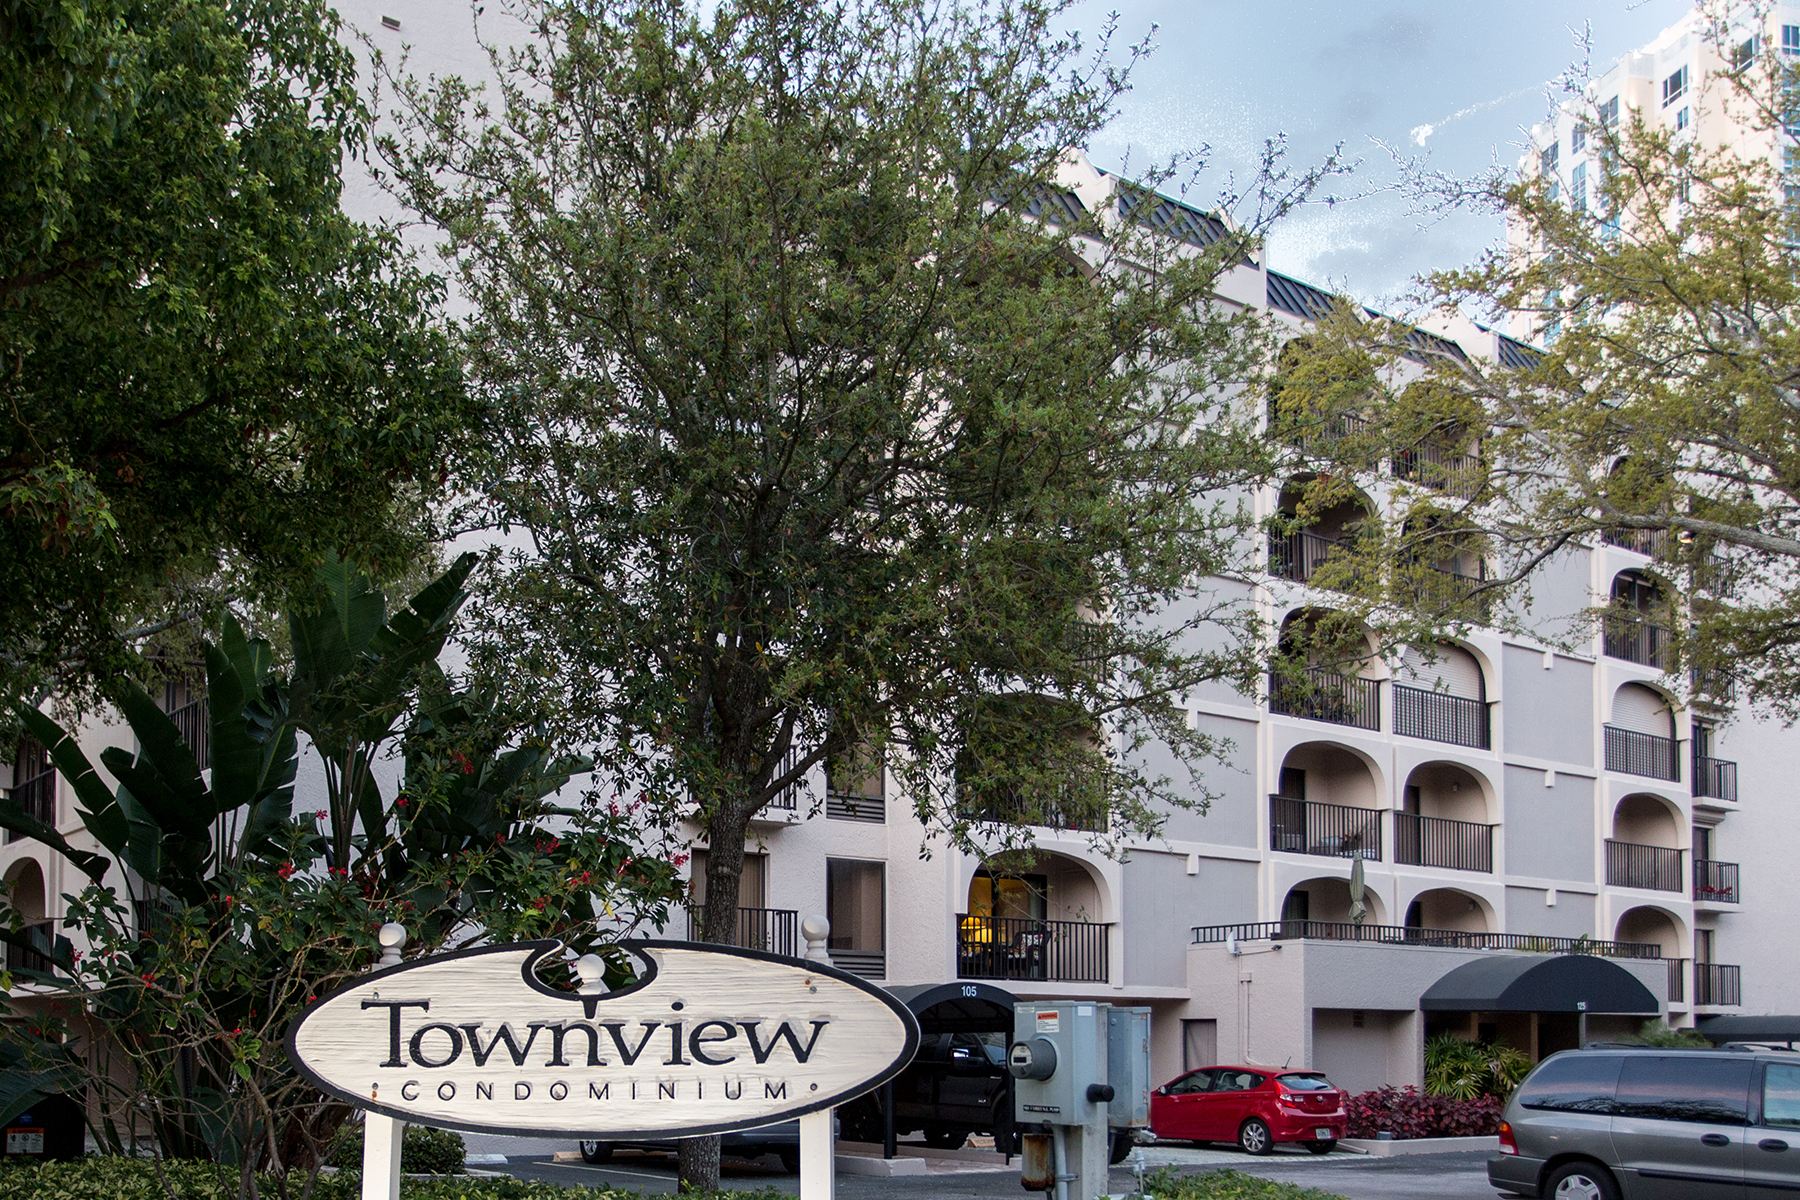 Condominium for Sale at TOWNVIEW 105 4th Ave NE 218, St. Petersburg, Florida 33701 United States